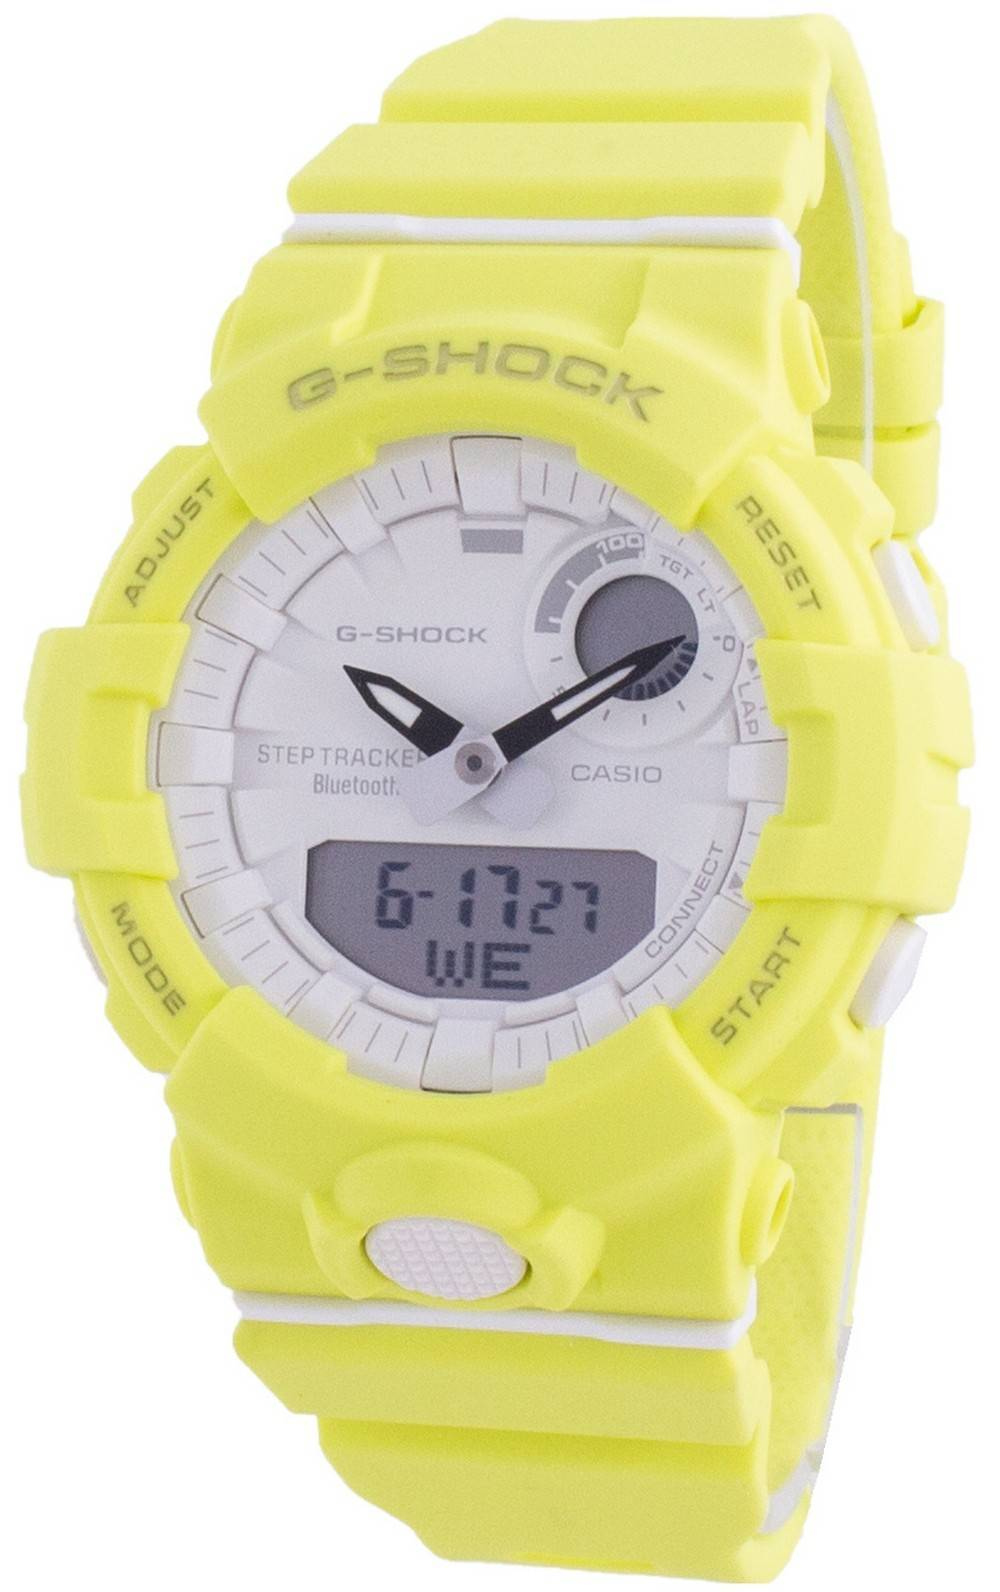 G-Shock GMA-B800-9A Quartz Shock Resistant 200M Men's Watch